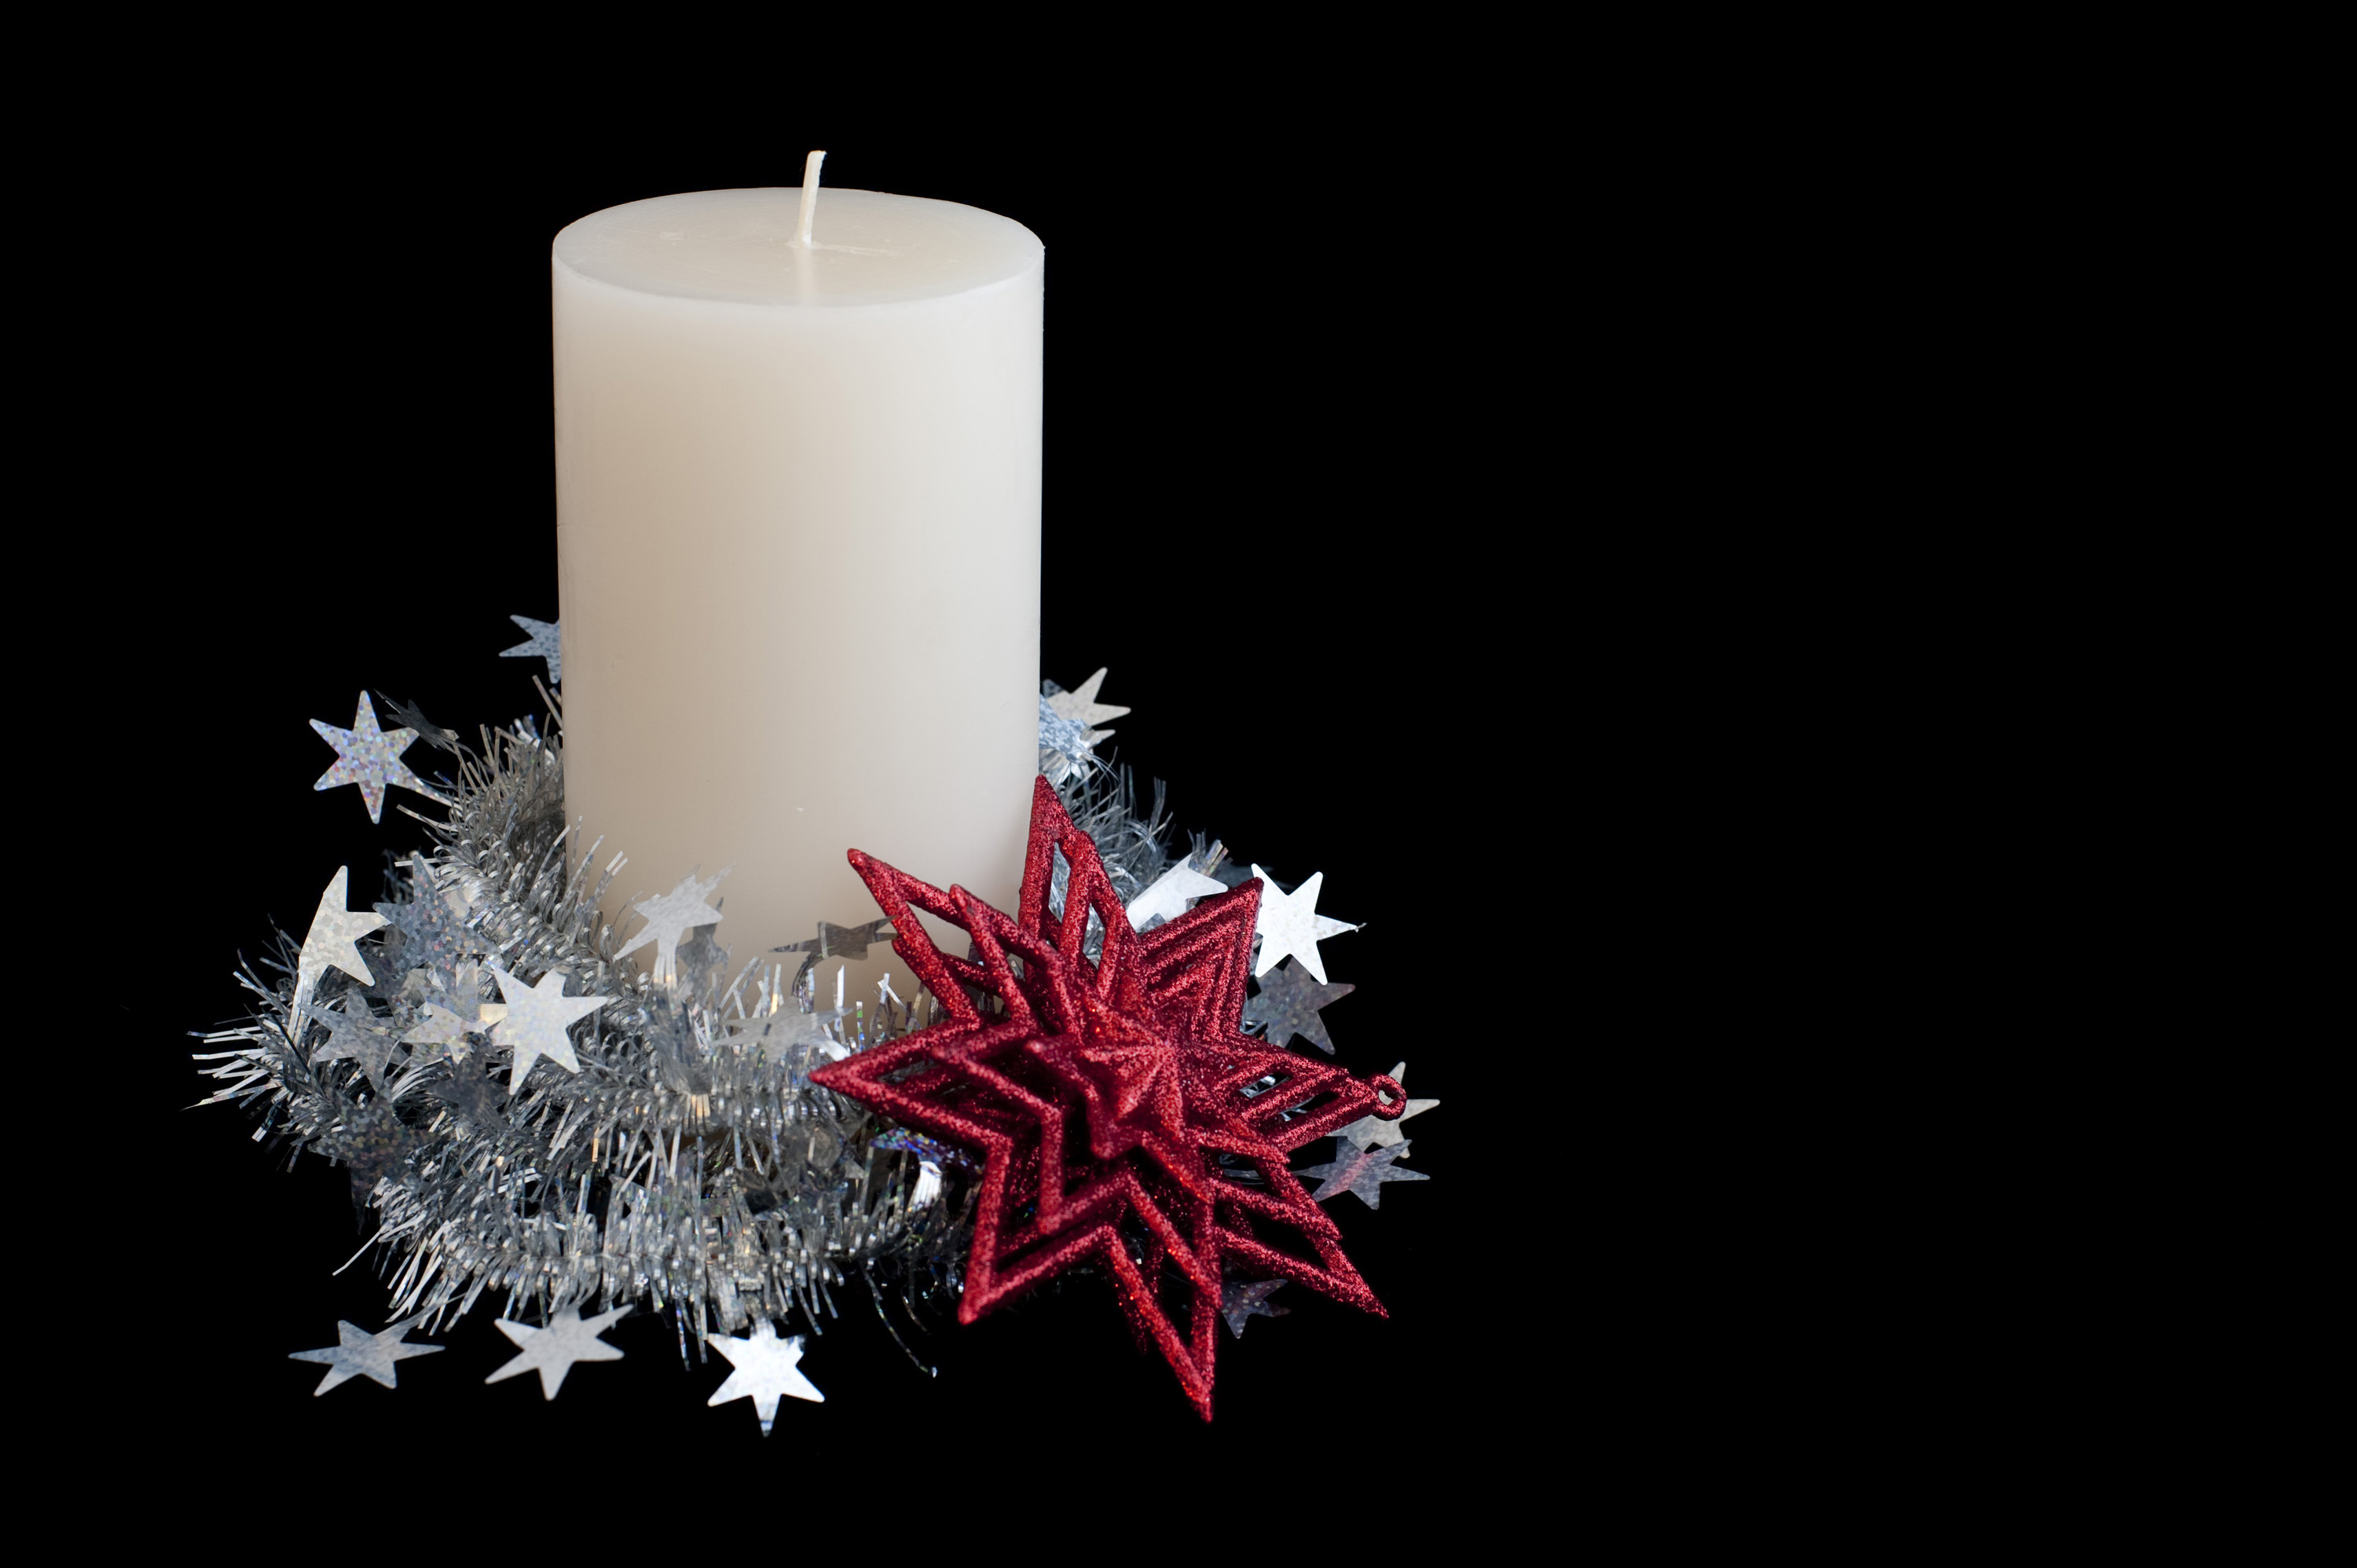 a christmas candle and star wrapped in tinsel on a black background